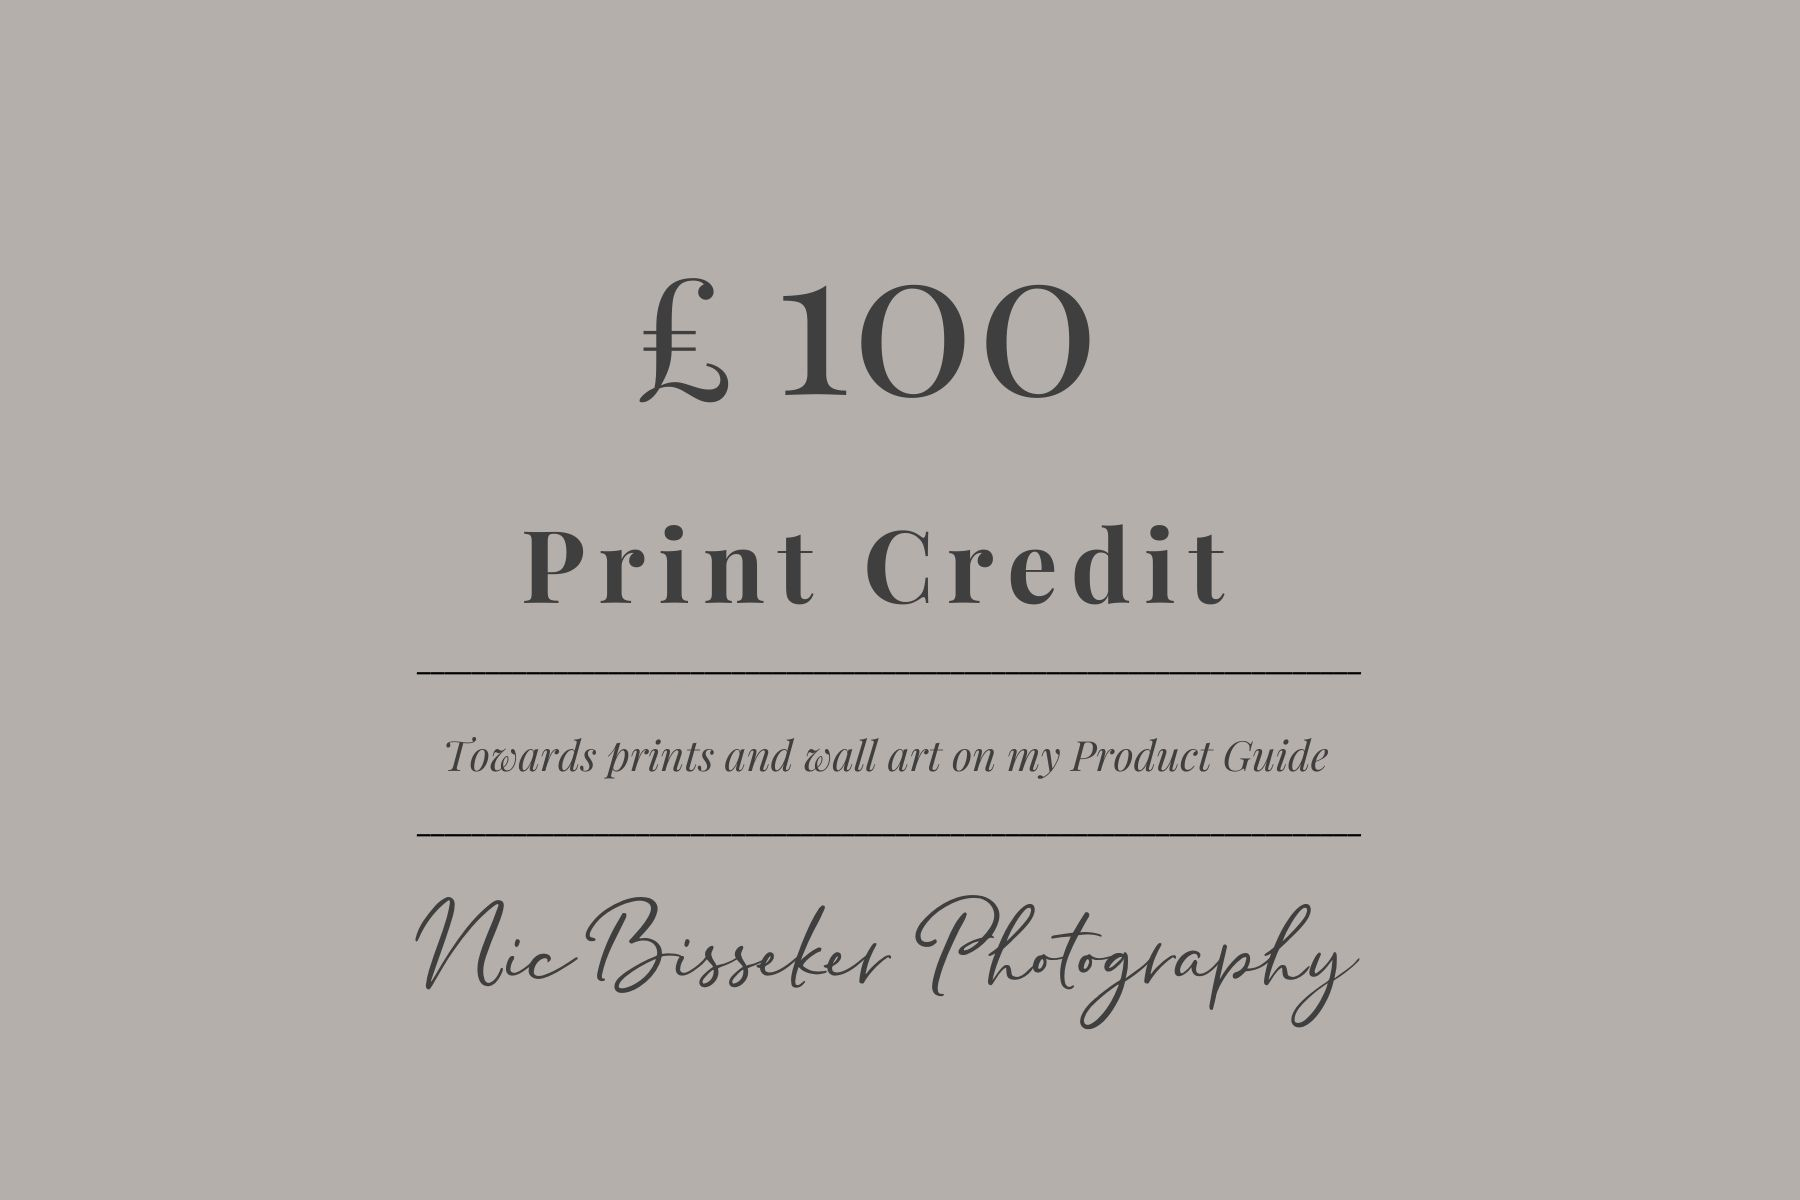 Nic Bisseker photography pricing